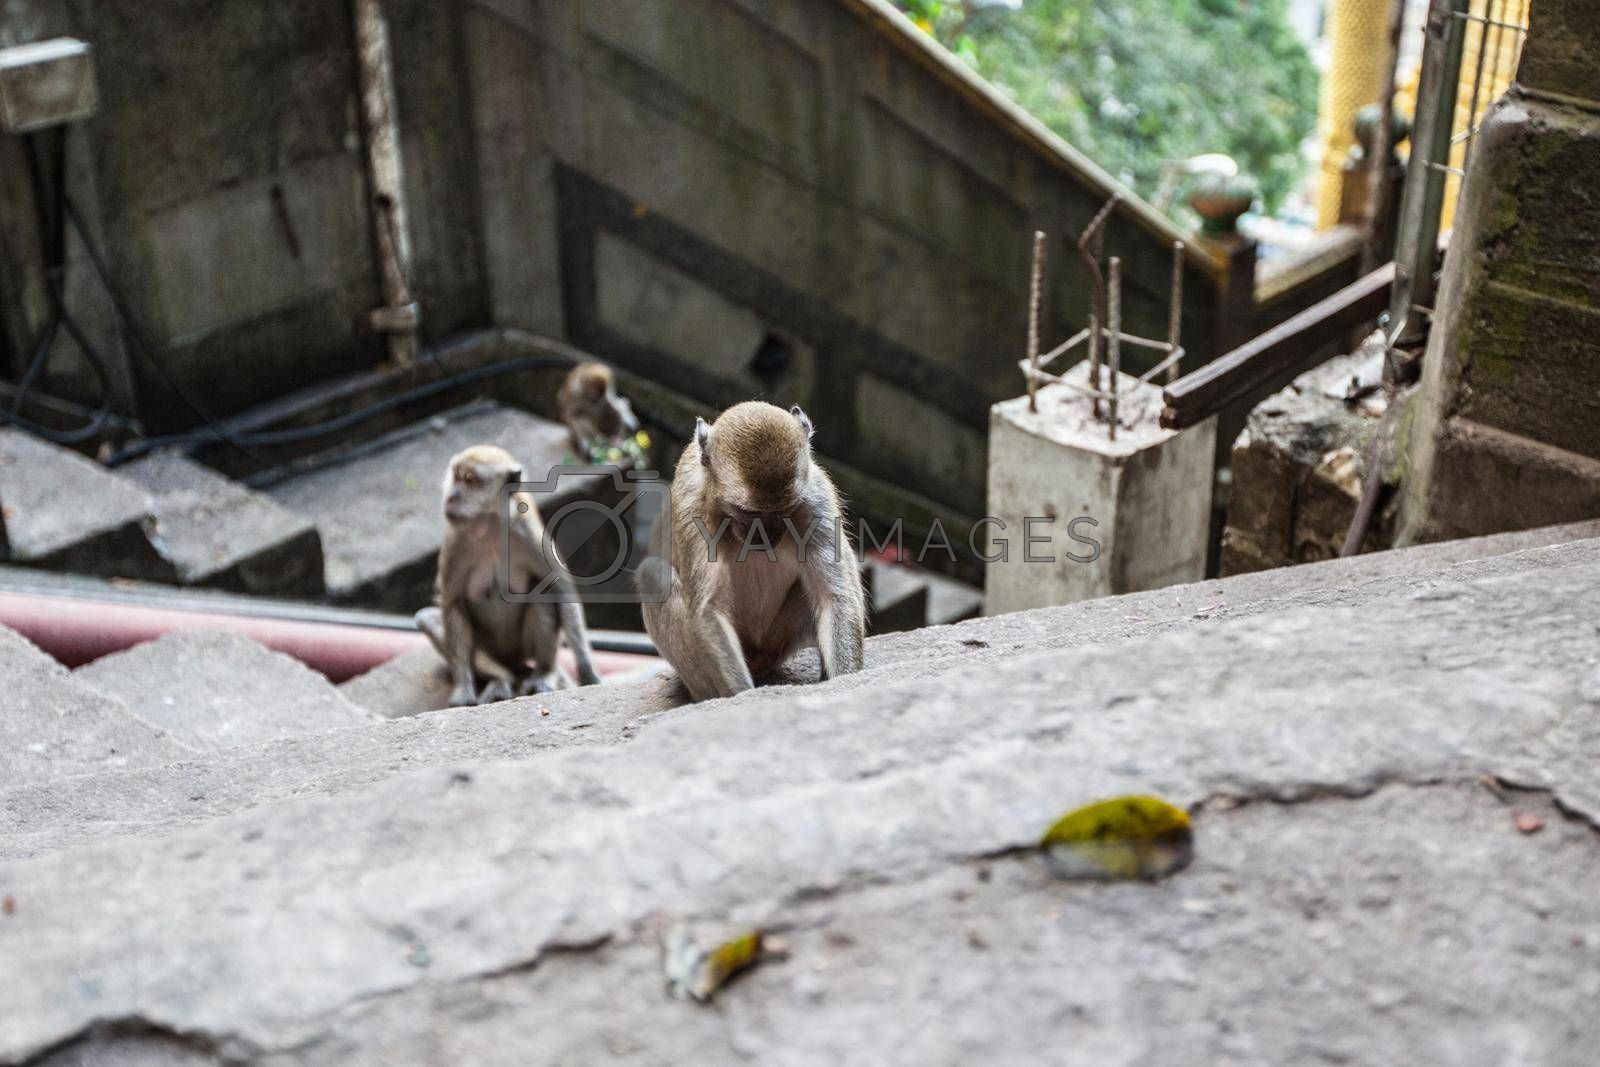 Royalty free image of Monkeys on steps of stairs by Yellowj